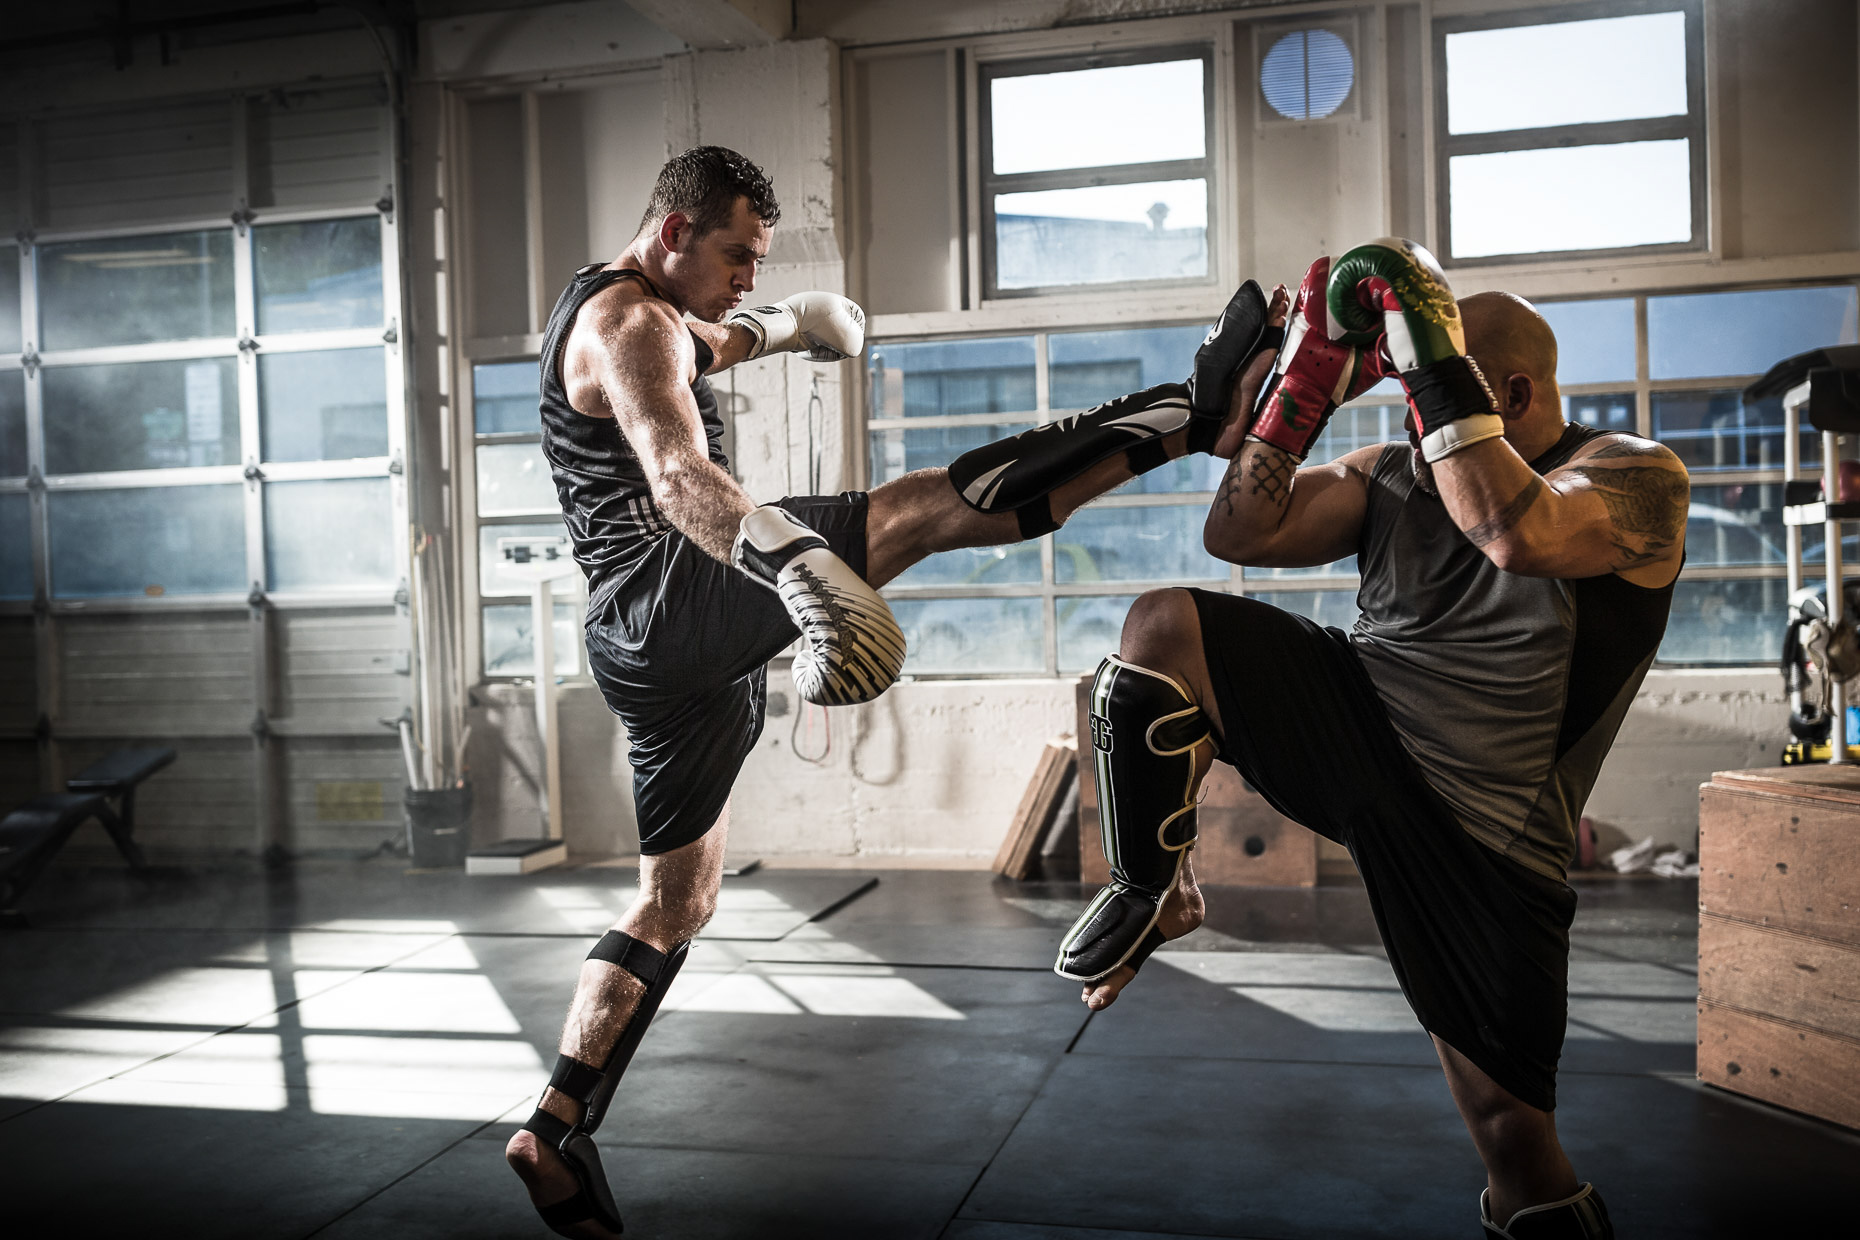 MMA athletes Jose Rogriguez and Will Hatcher  training in a crossfit gym by Andy Batt